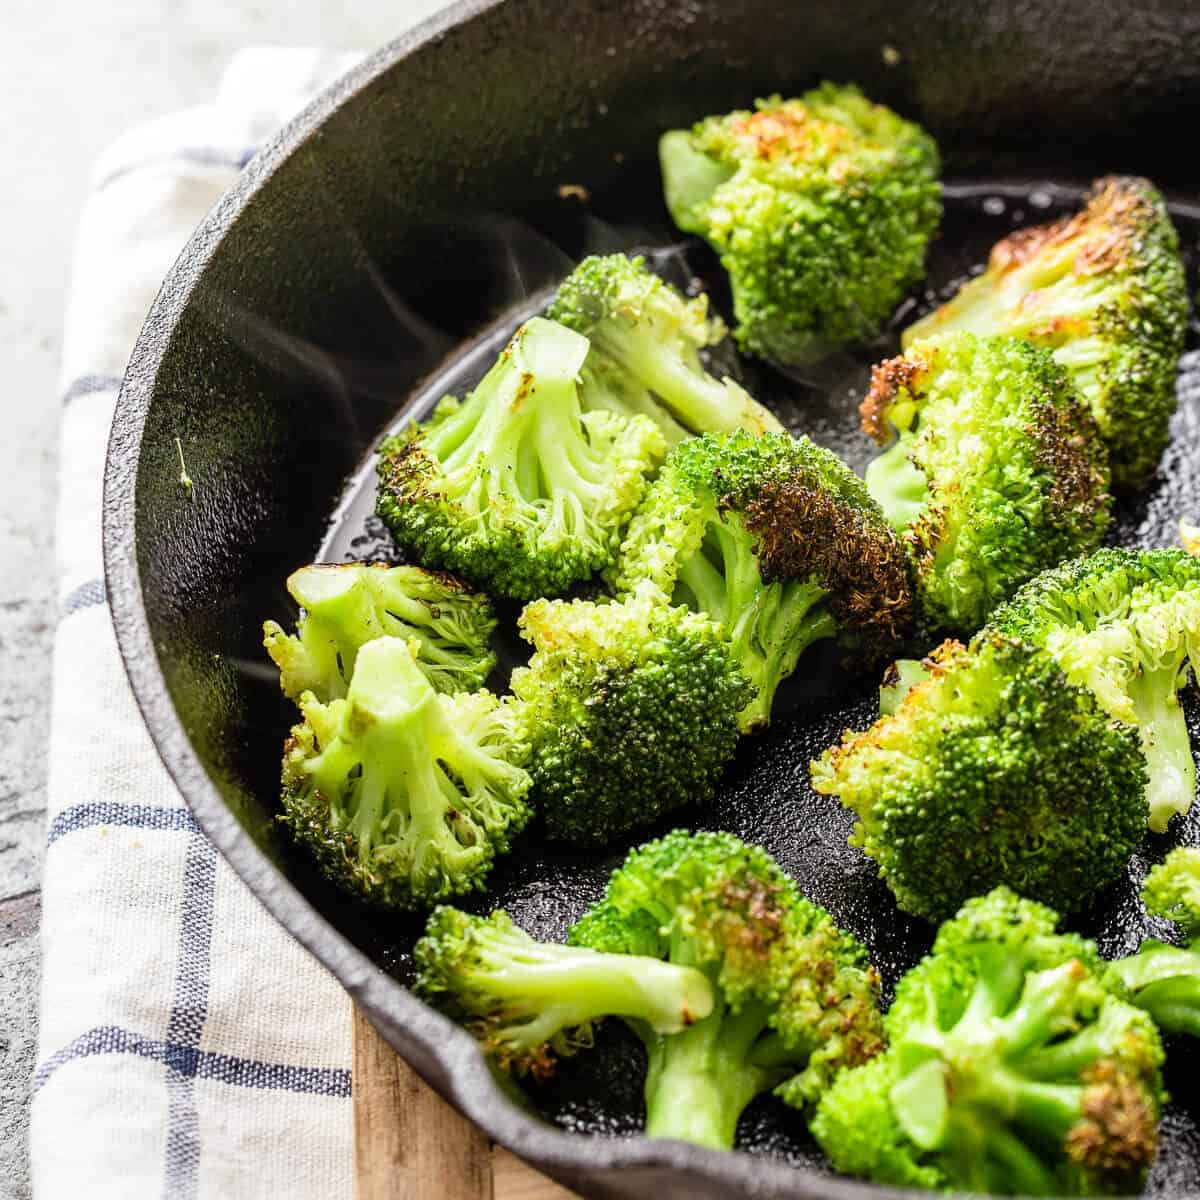 cooked broccoli in a cast iron pan